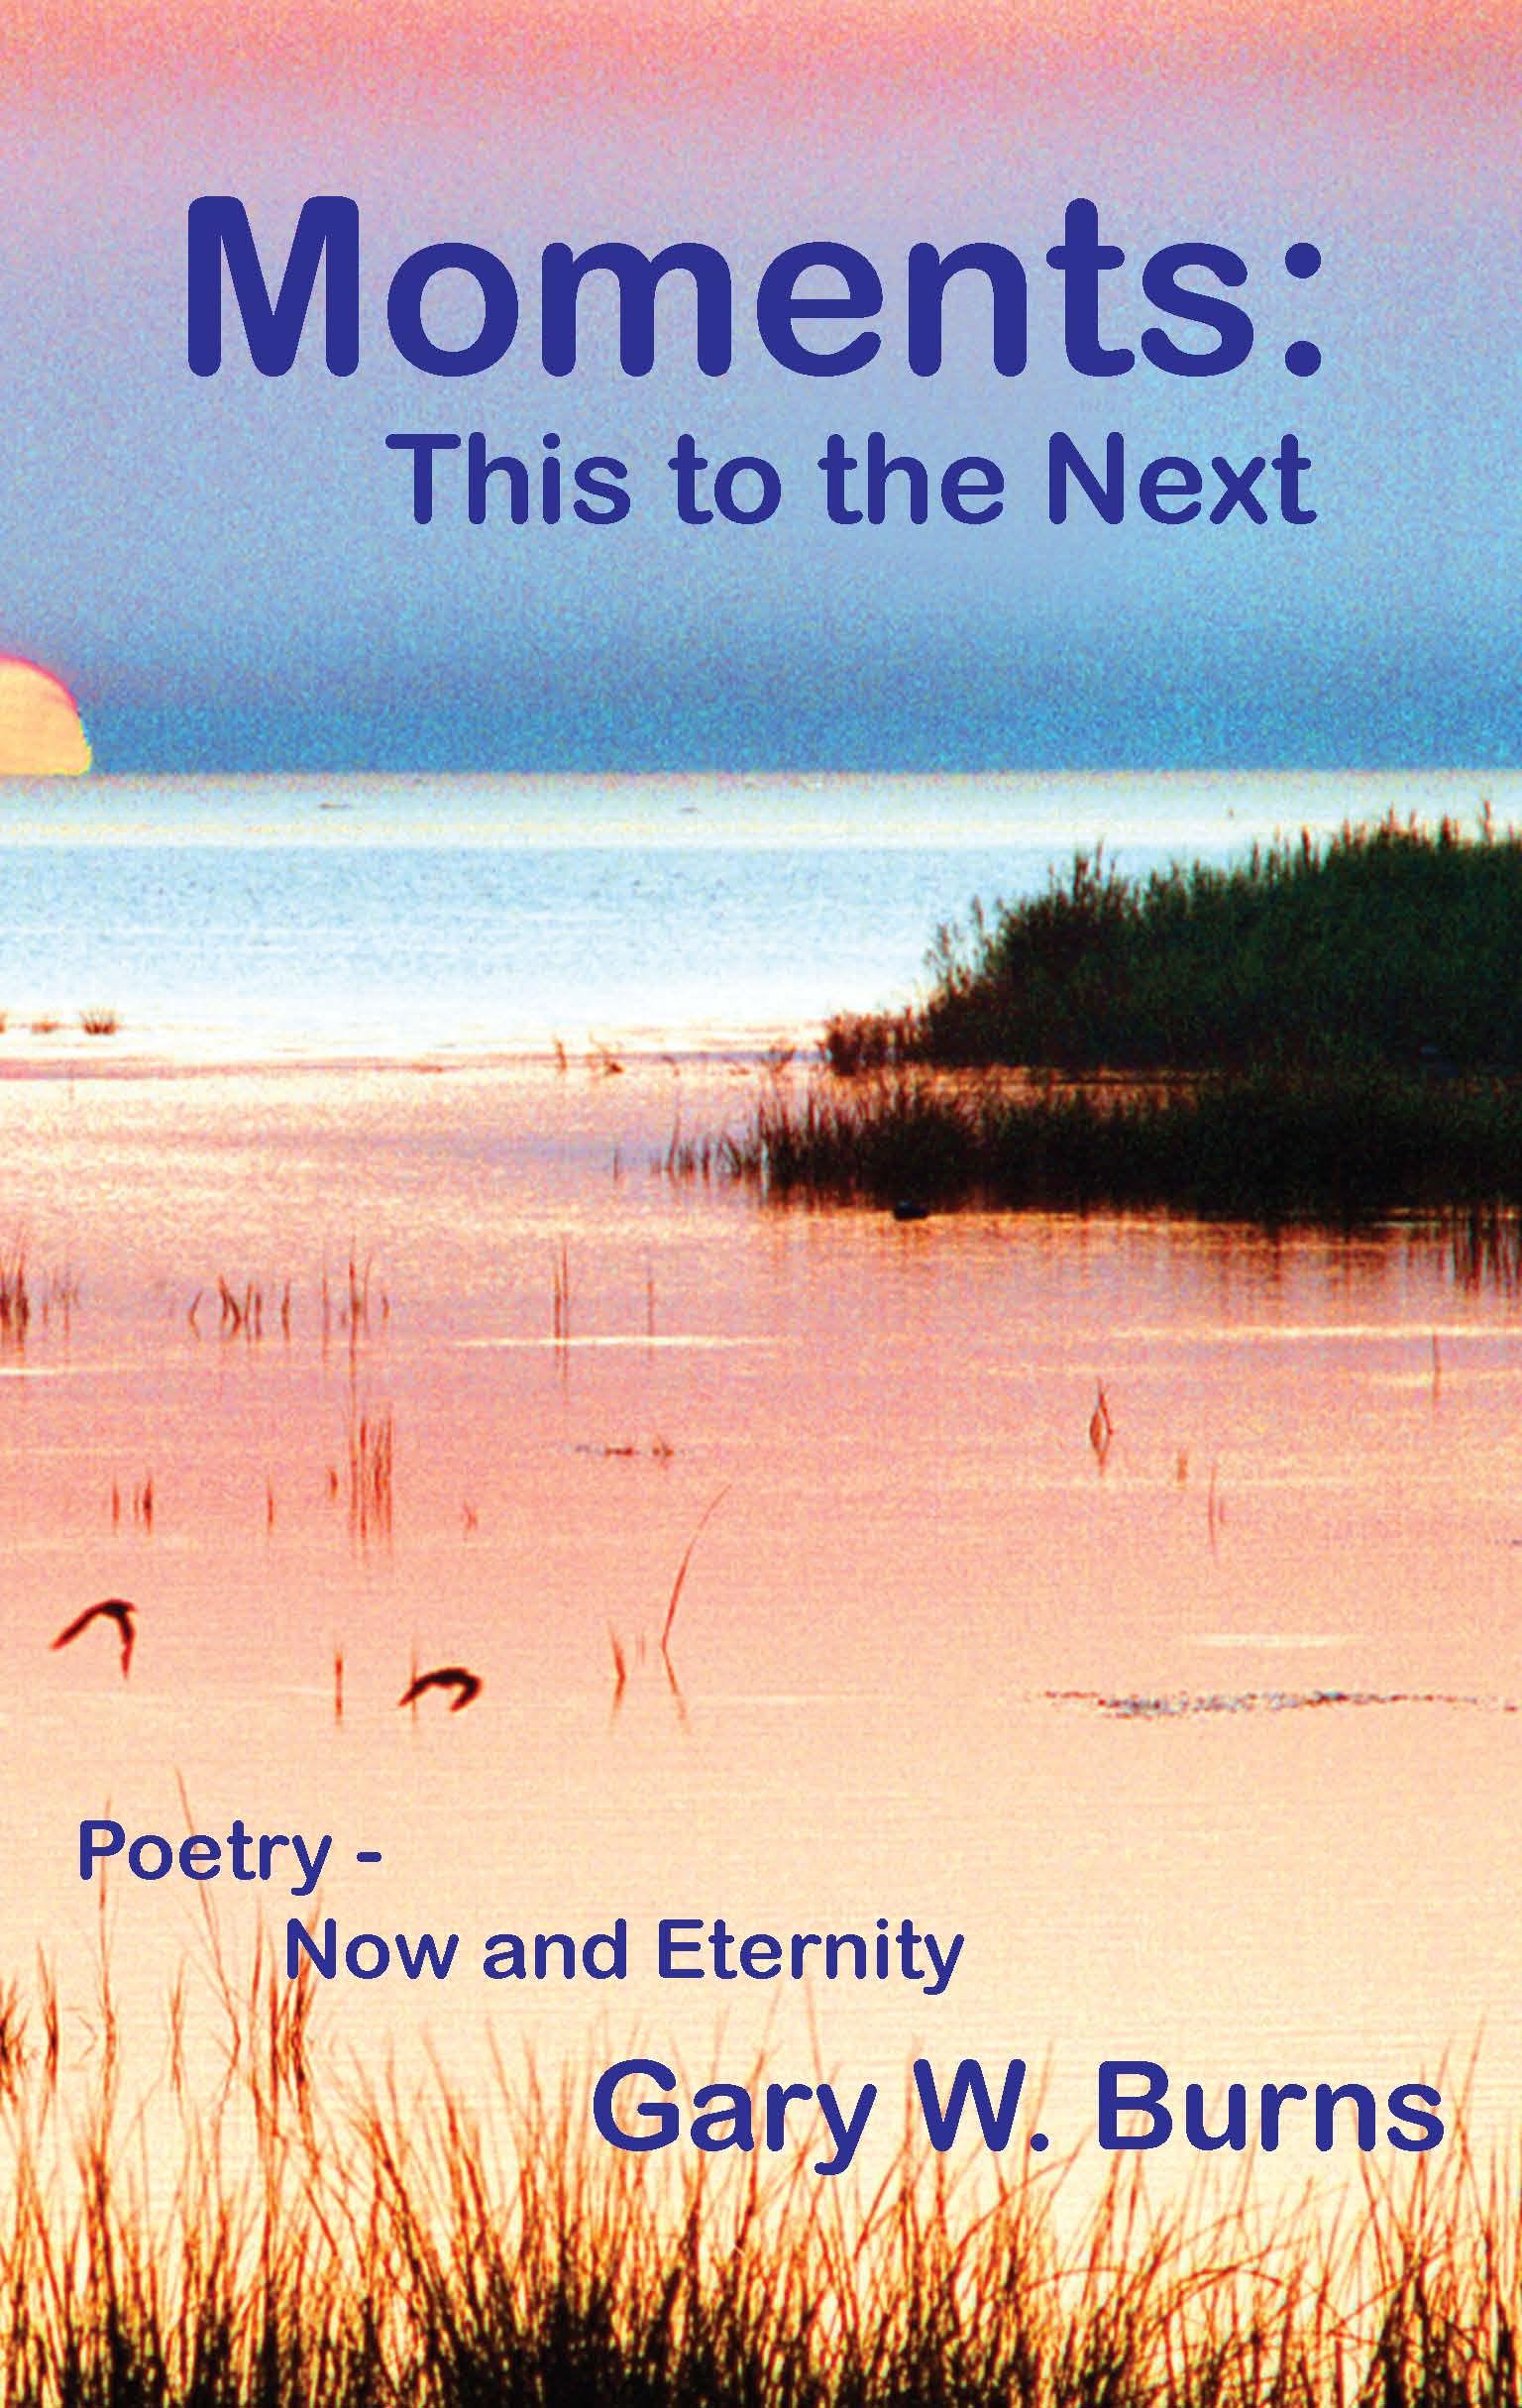 Moments: This to the Next - Poetry - Now and Eternity